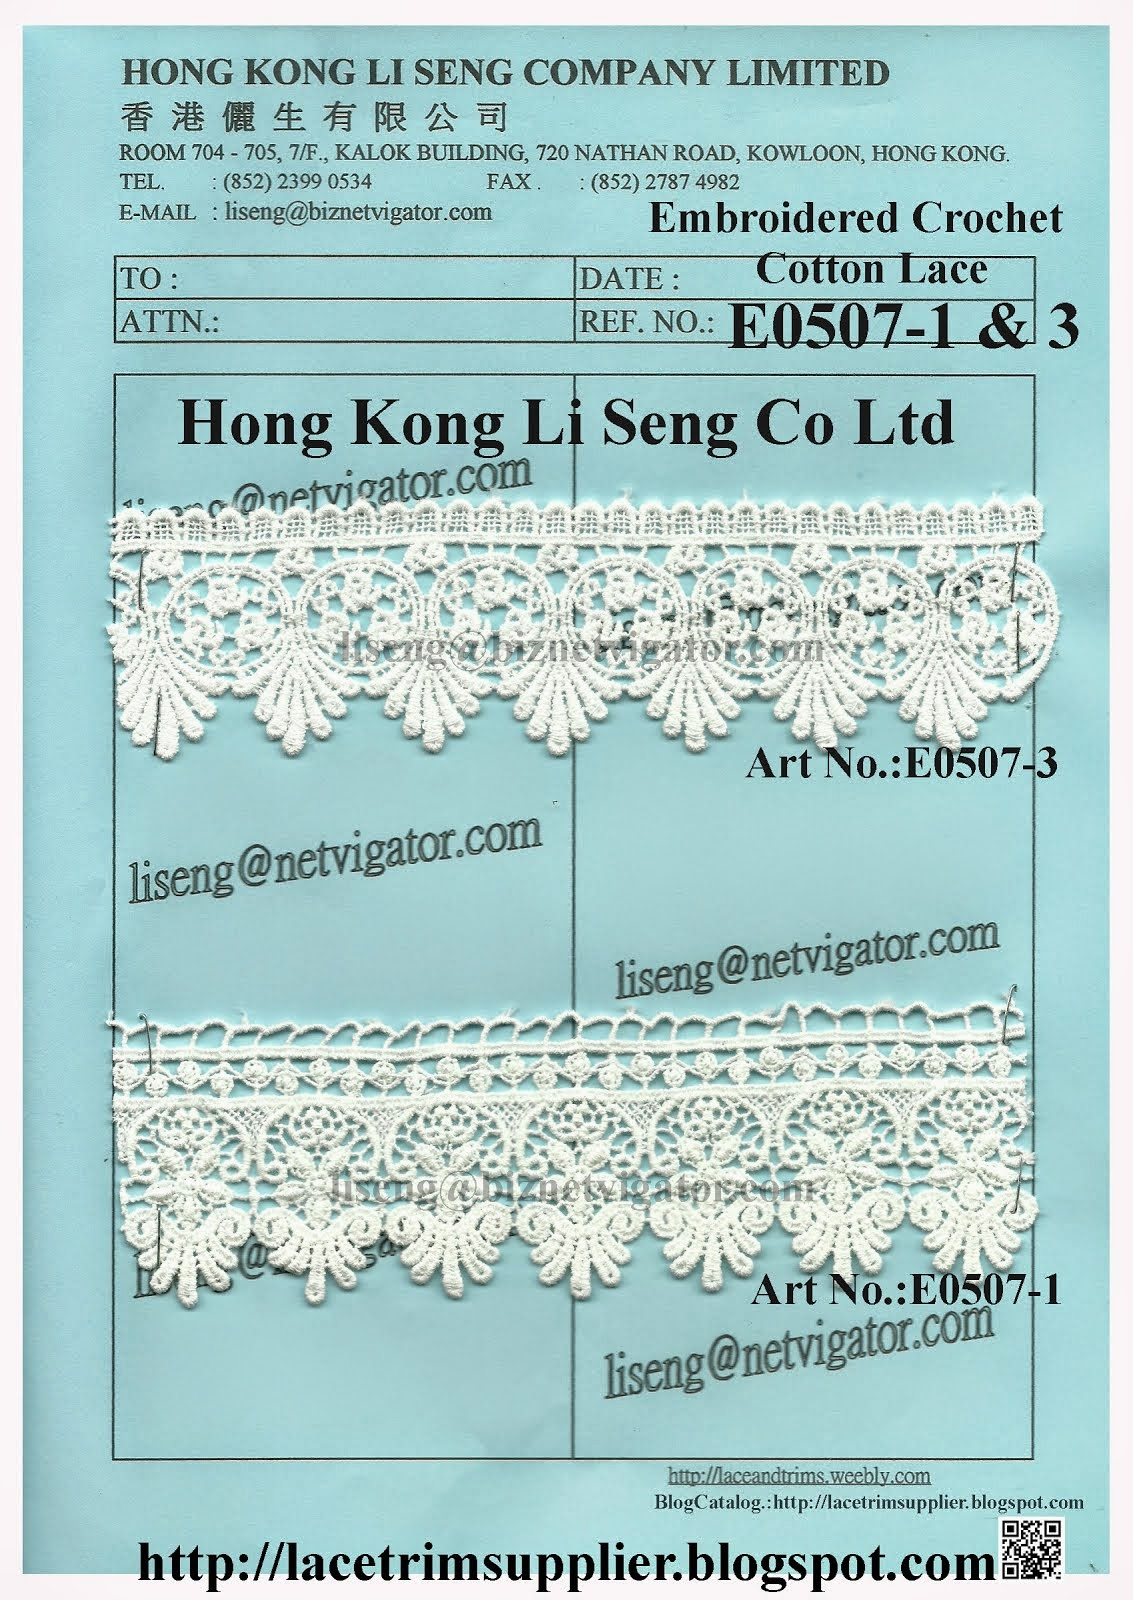 New Pattern Crochet Cotton Lace Factory - Hong Kong Li Seng Co Ltd